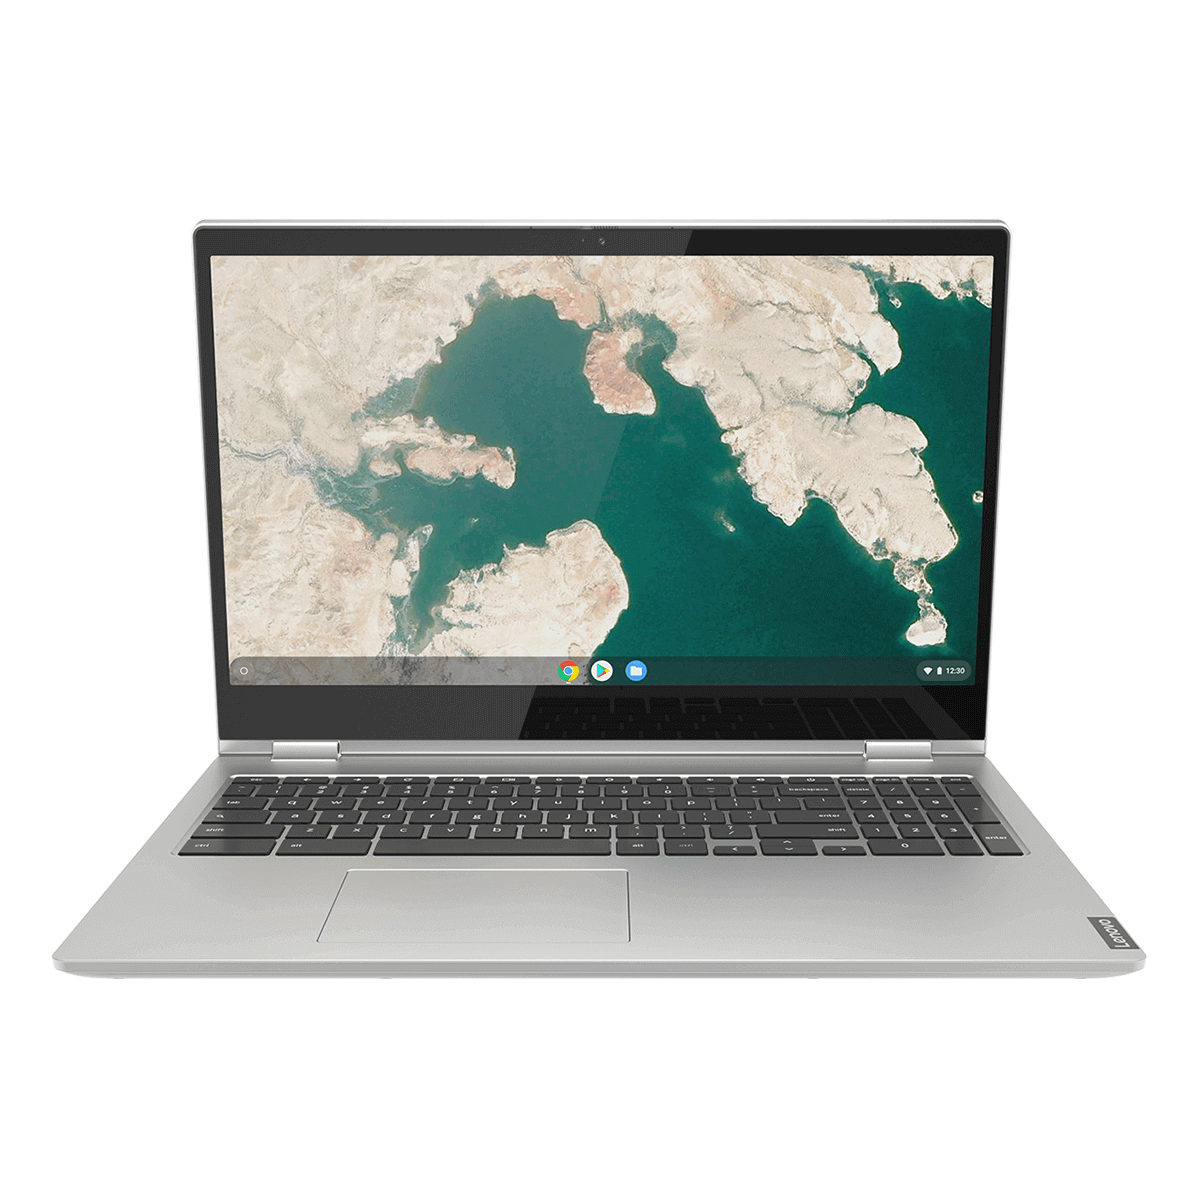 Chromebook C340 15 - Mineral Grey